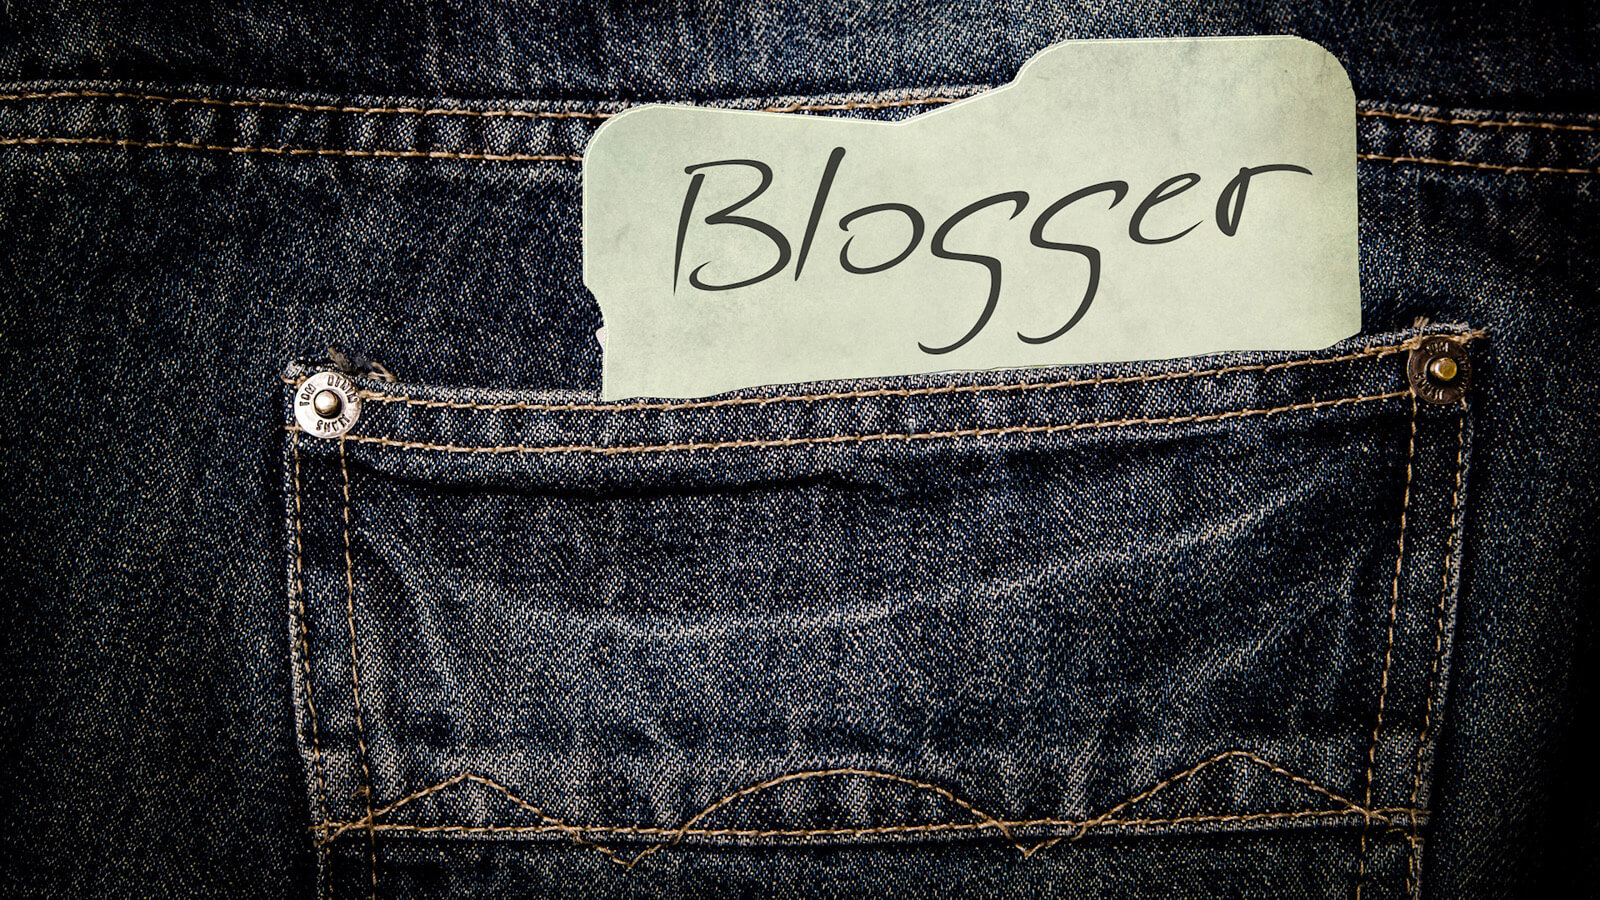 Be a blogger and do what you are passionate about.